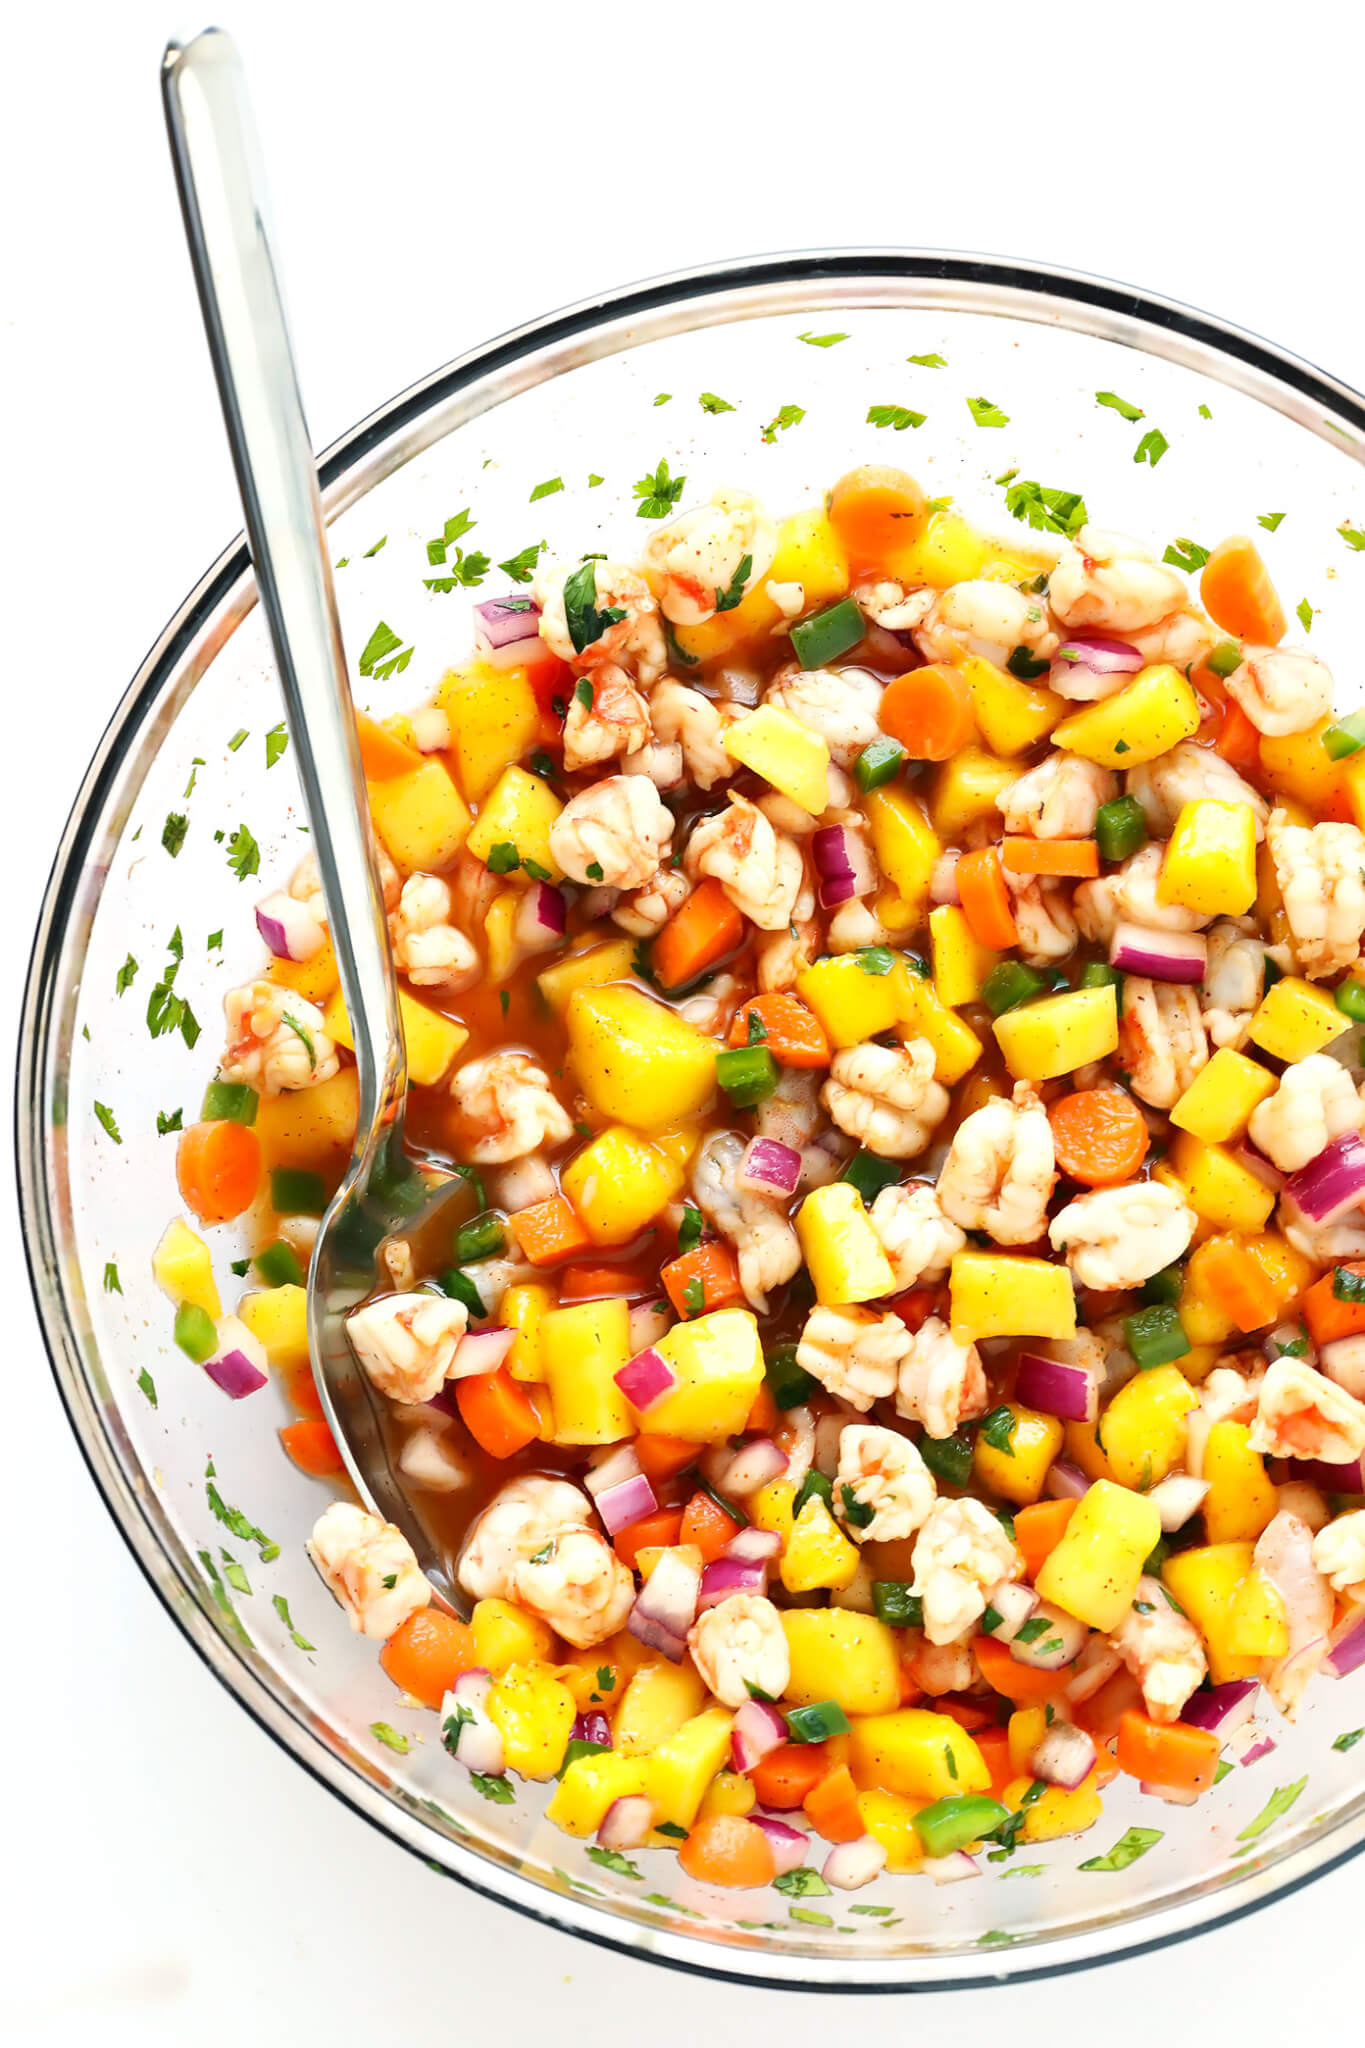 This Easy Shrimp Ceviche is made with mango, carrots, jalapeno, red onion, cilantro, and a delicious chili-lime sauce. Quick and easy to prepare, and so delicious with chips or o a tostada!   gimmesomeoven.com